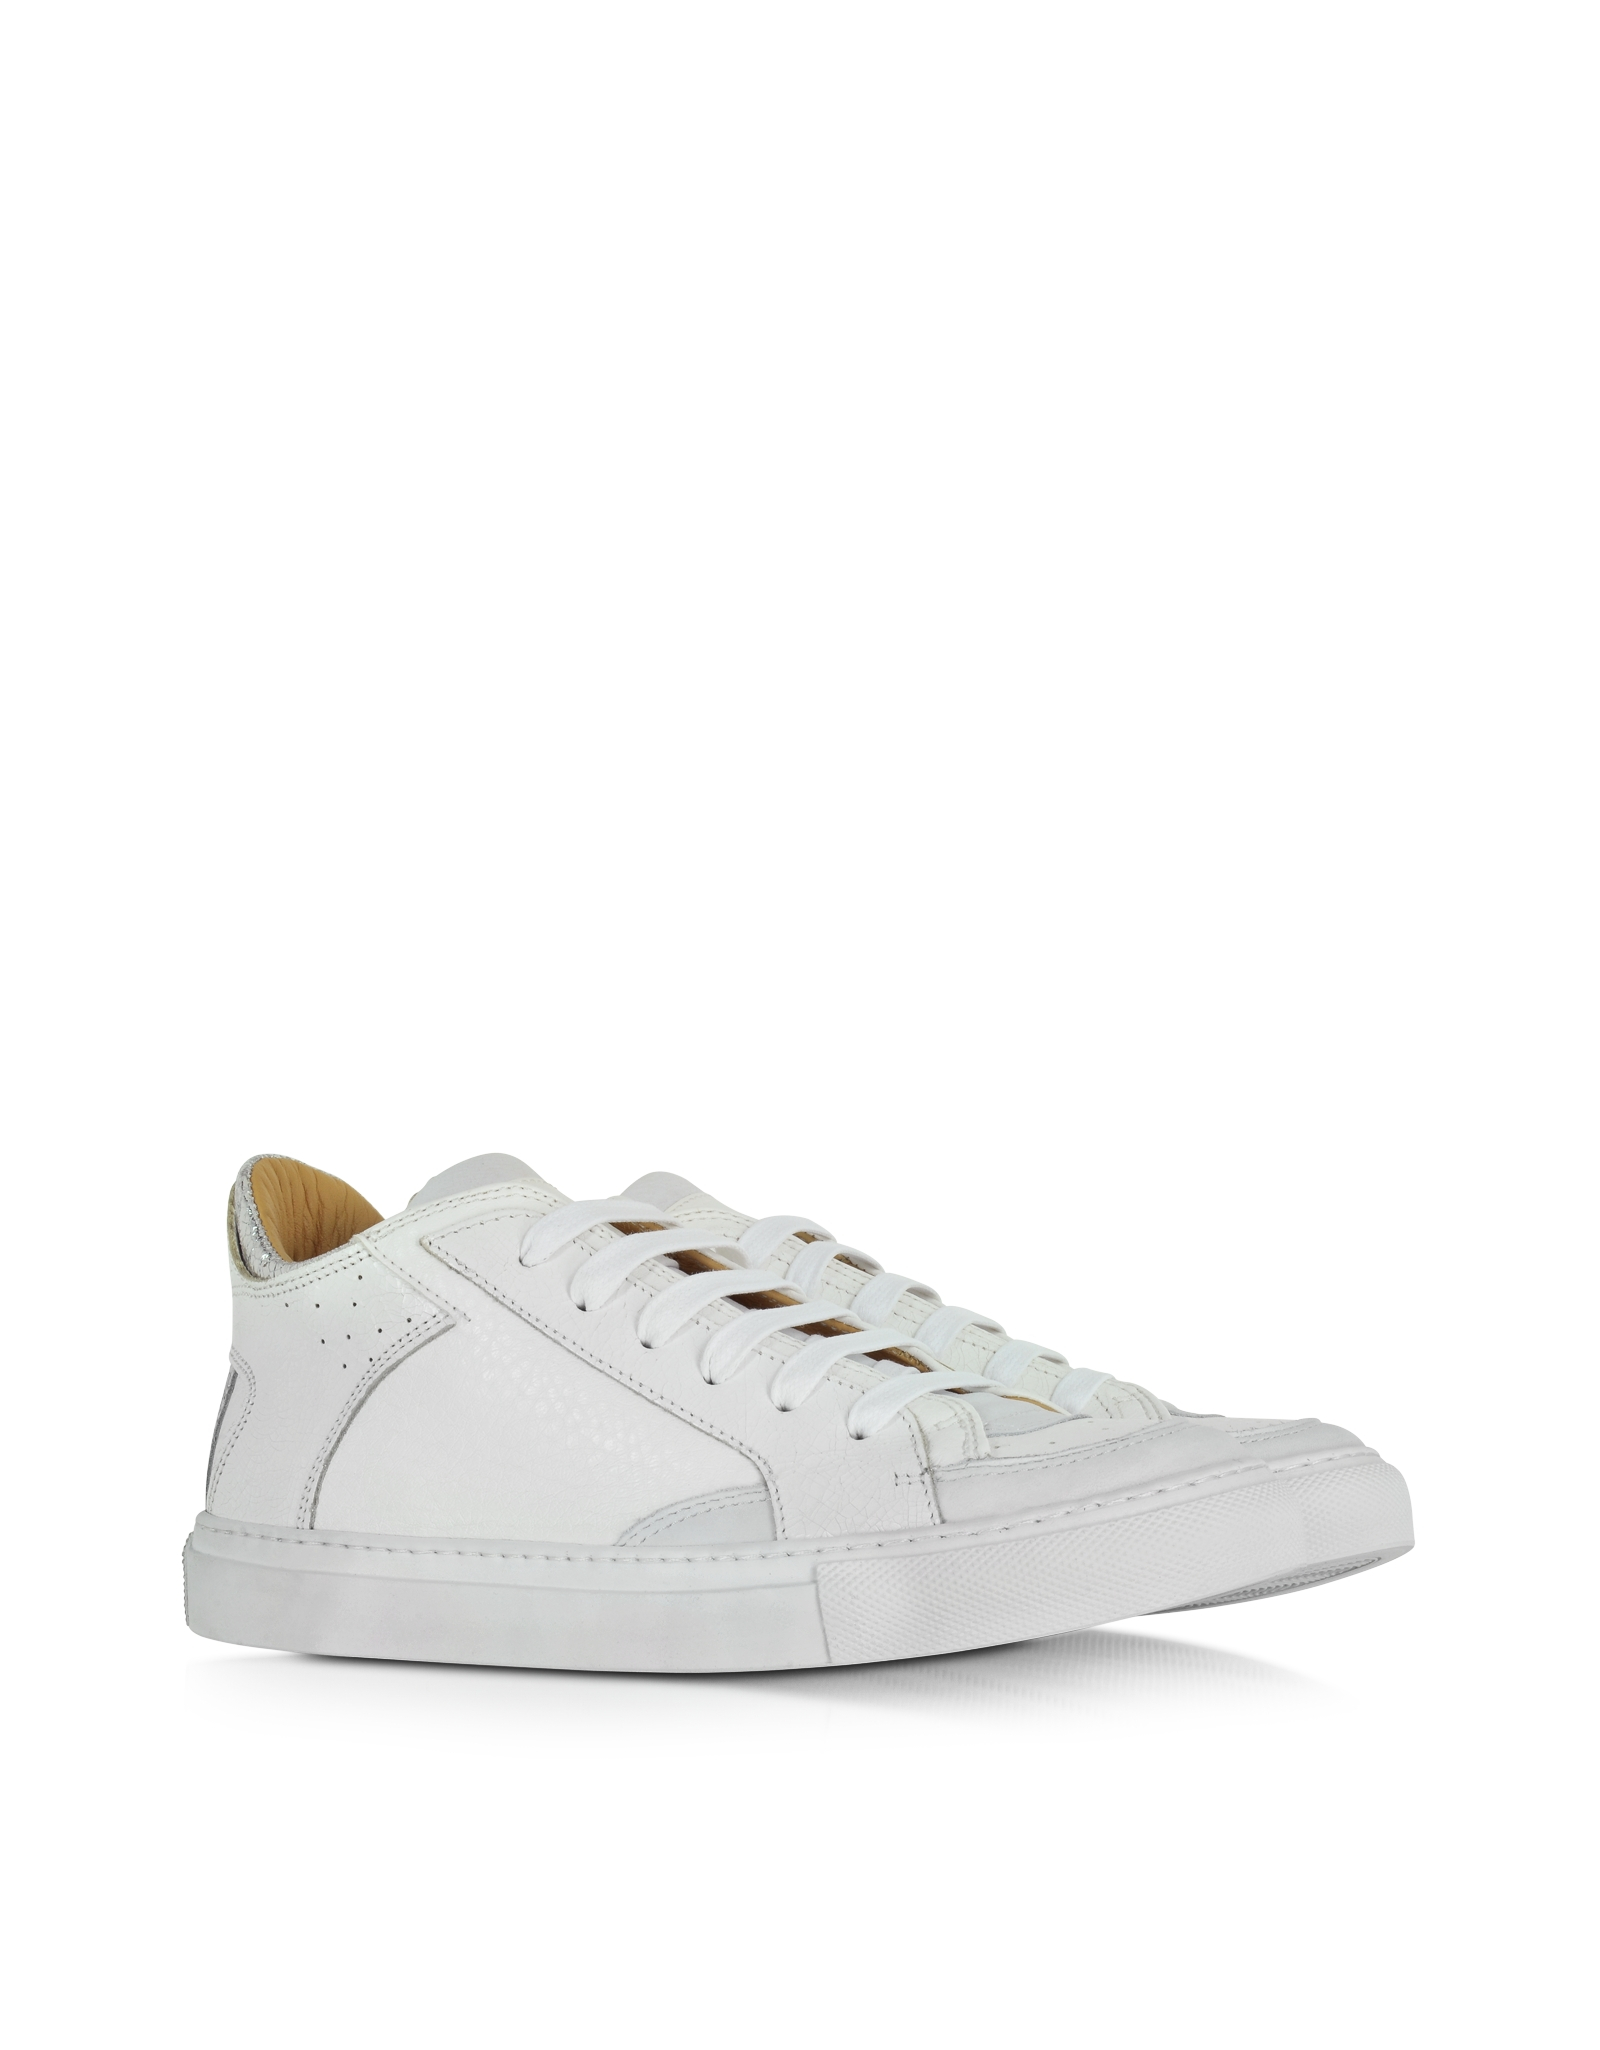 classic low-top sneakers - White Maison Martin Margiela Ntnh2g8